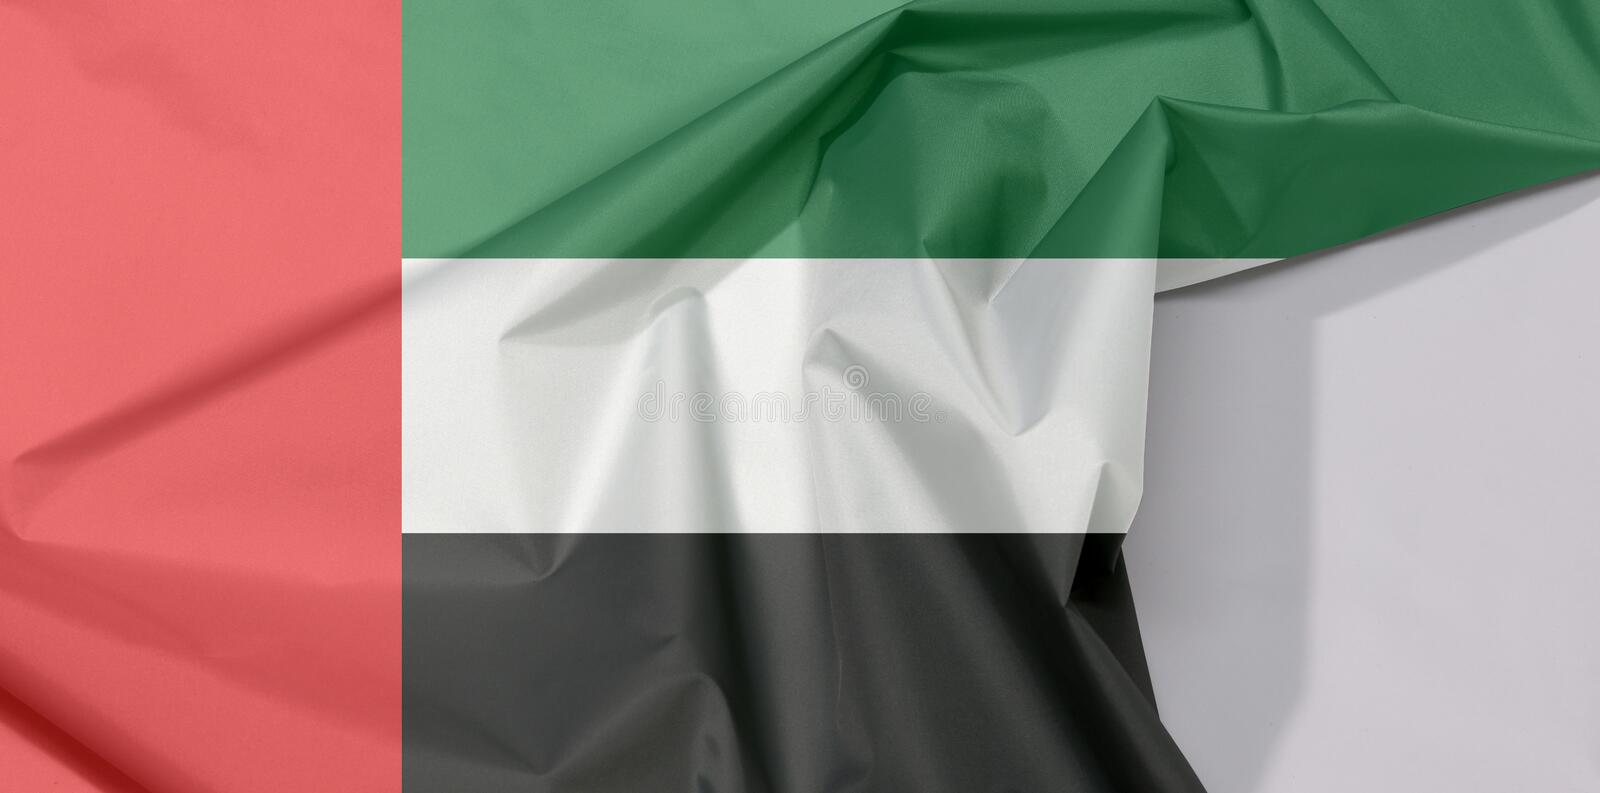 United Arab Emirates fabric flag crepe and crease with white space. stock images